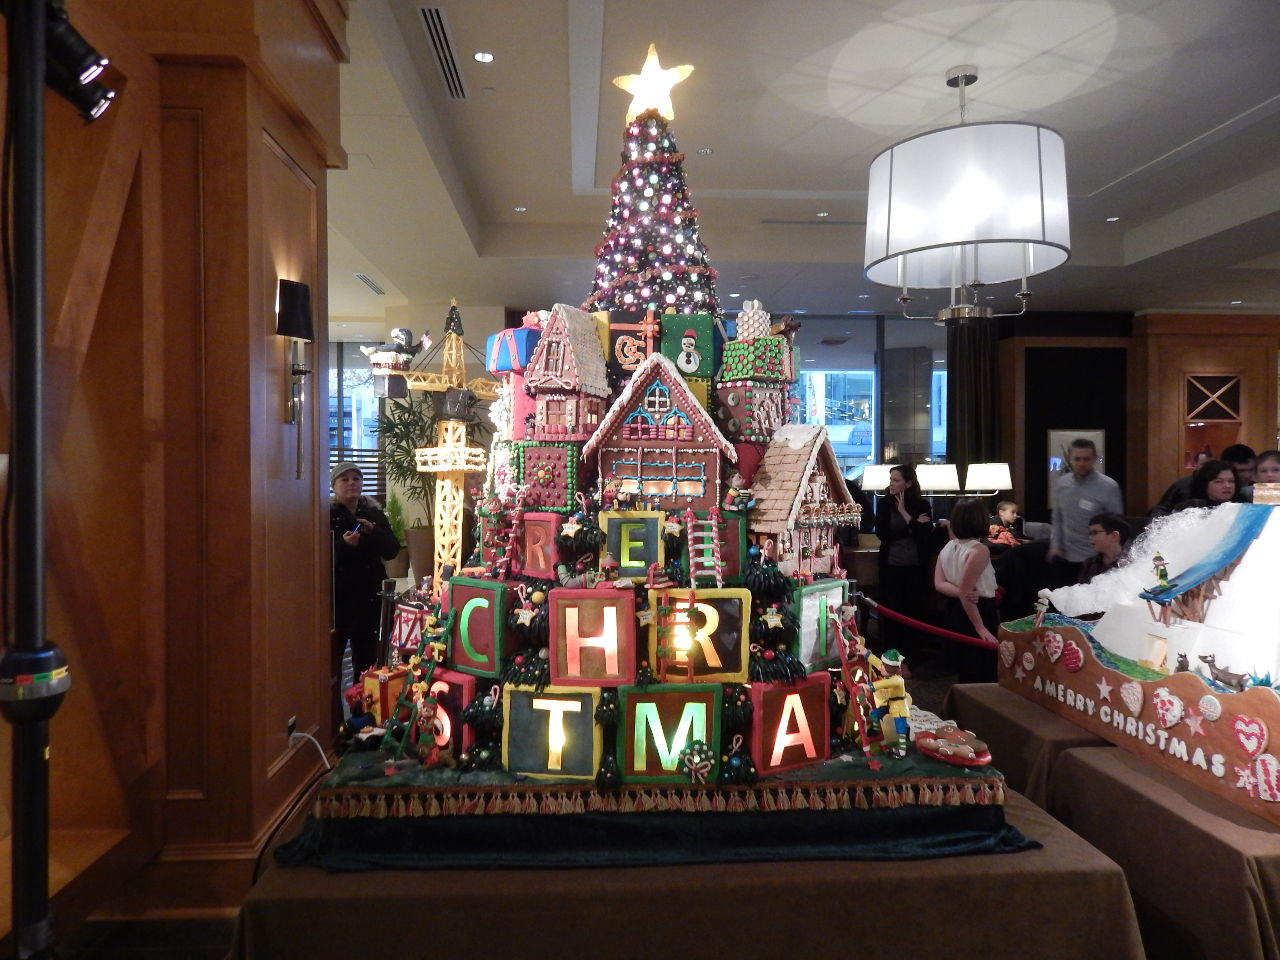 Seattle hotel Christmas display